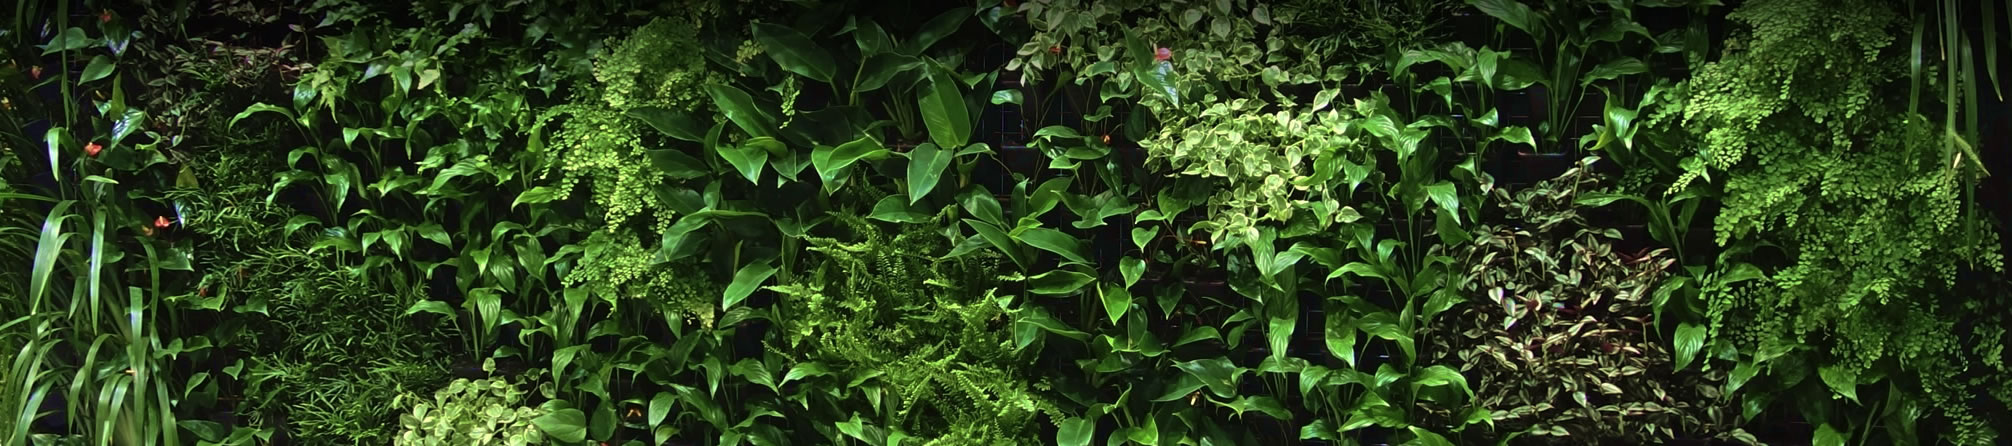 Stylized Australian Shop Greenwall Solutions Au Vertical Garden Products Greenwall Vertical Garden Solutions garden Vertical Gardens Solutions